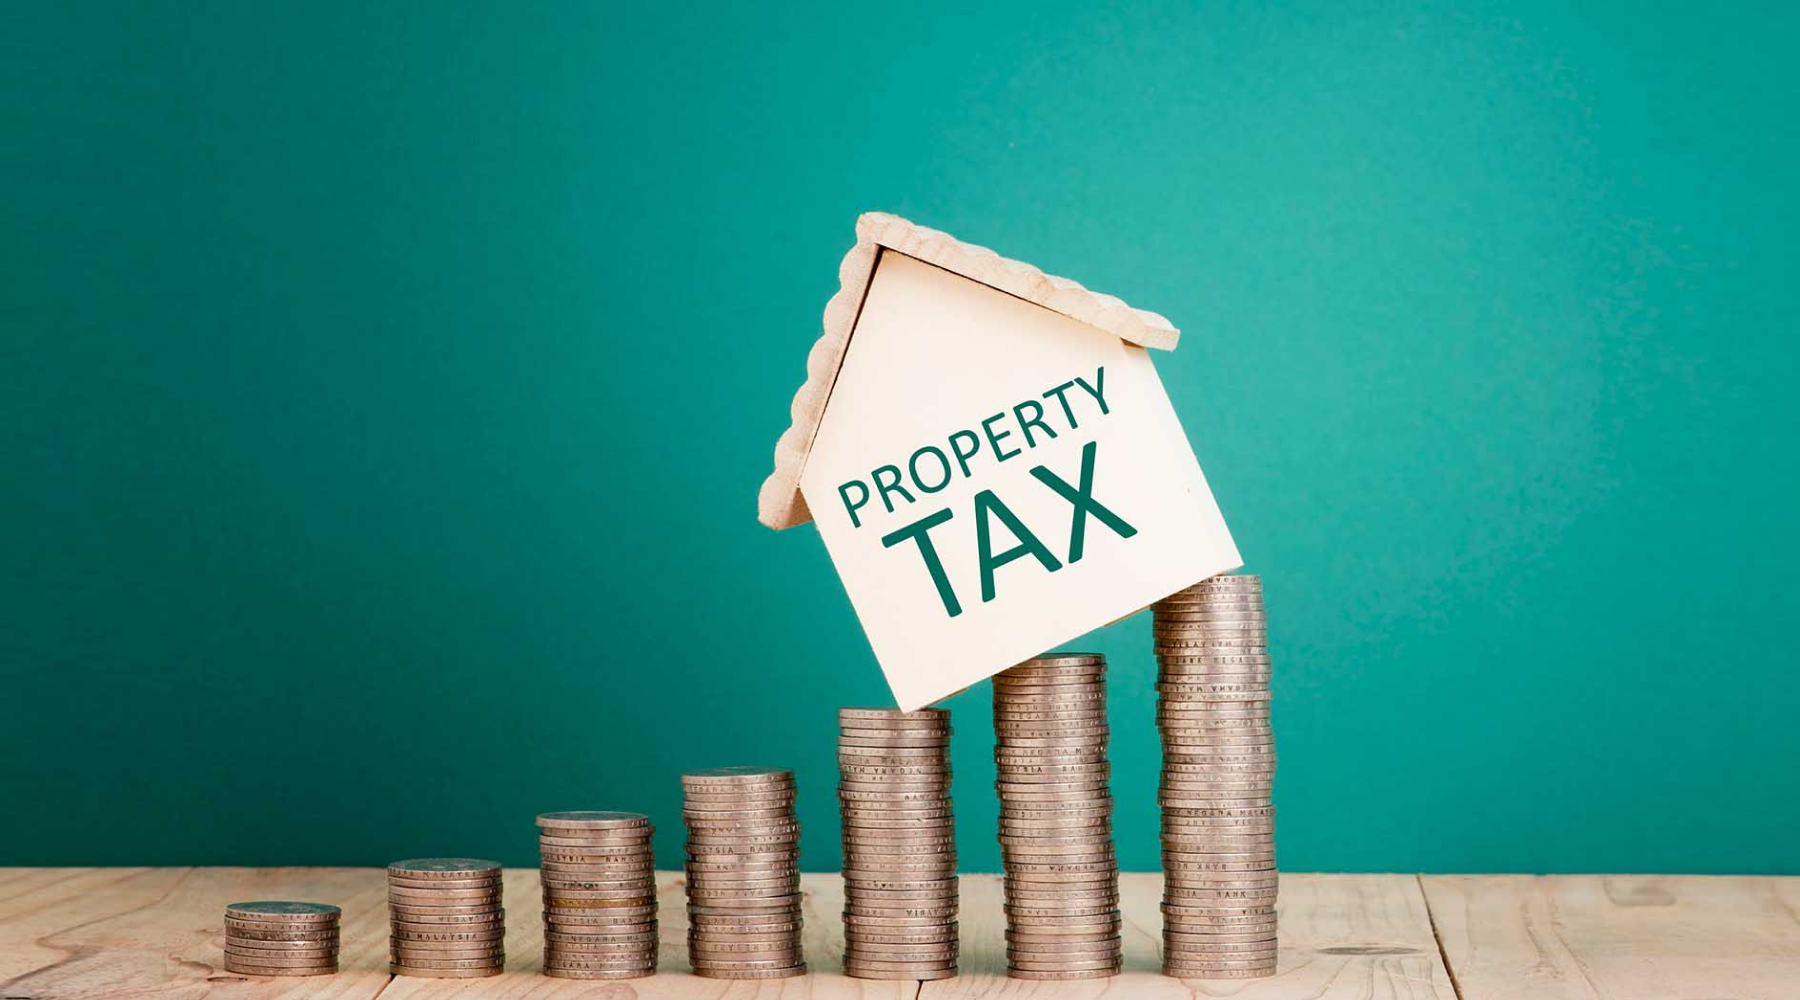 NEW List of Property Tax Blogs and Websites that Allow Guest Blogging wallpaper